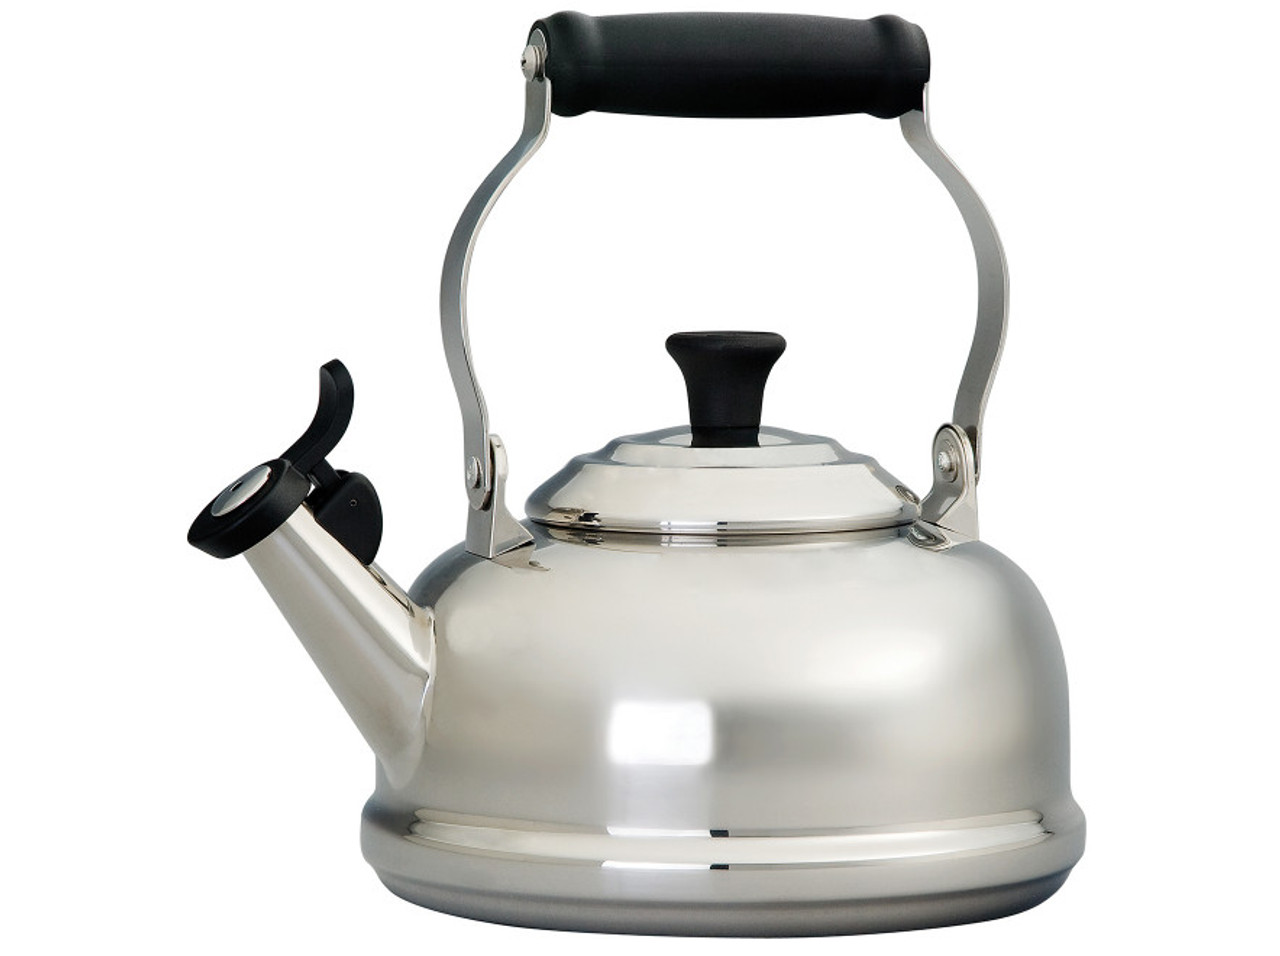 LE CREUSET CLASSIC WHISTLING KETTLE Stainless Steel